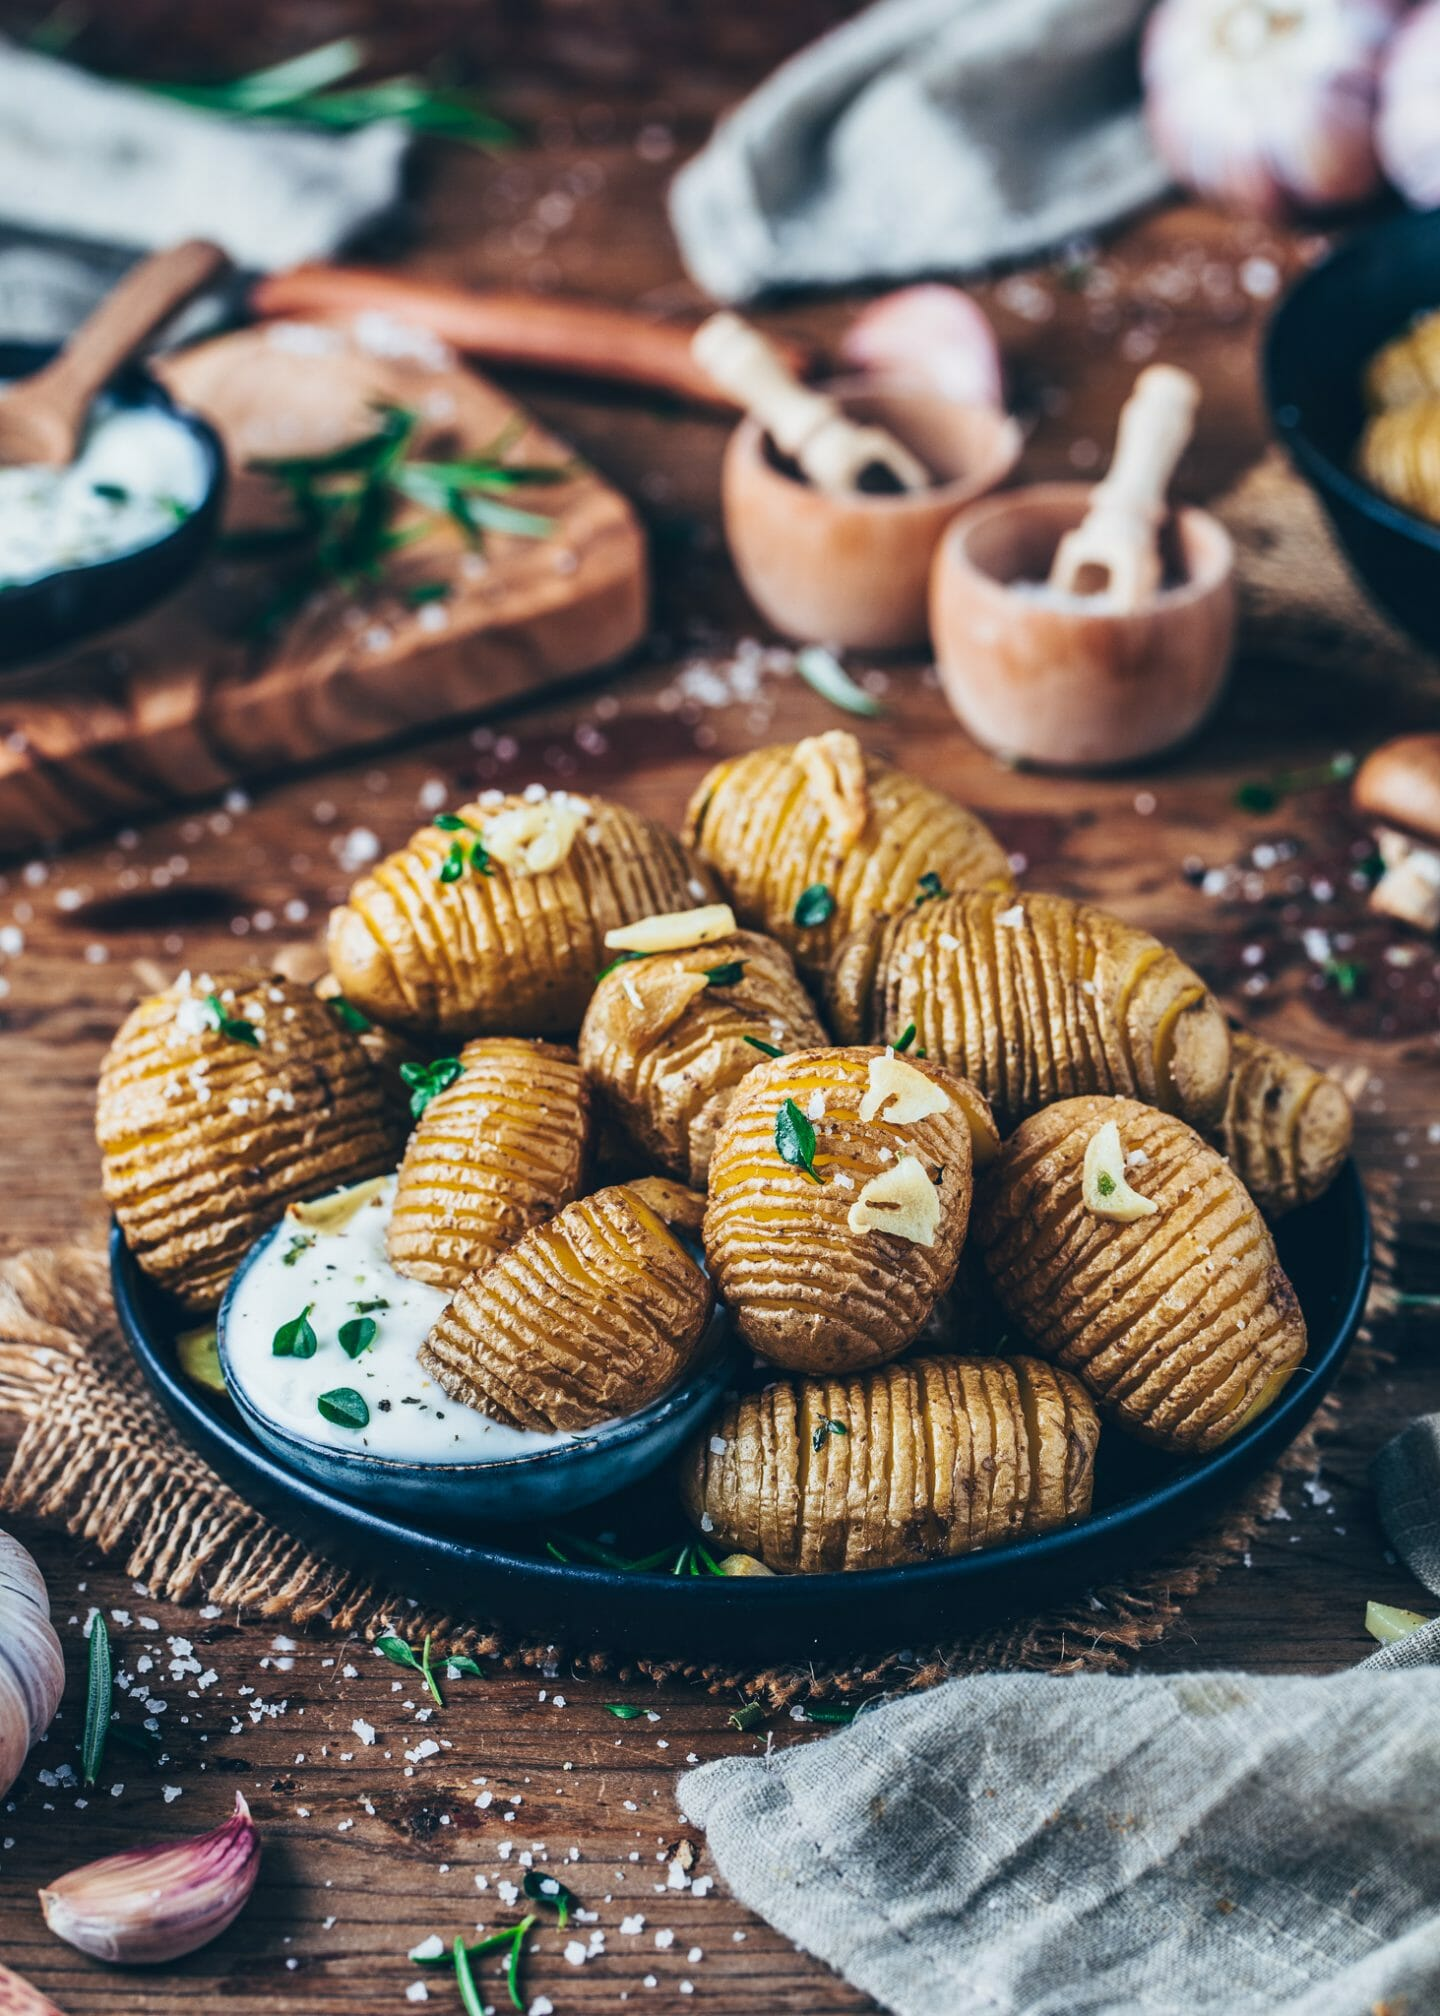 Hasselback Potatoes with garlic, rosemary, thyme and yoghurt dip